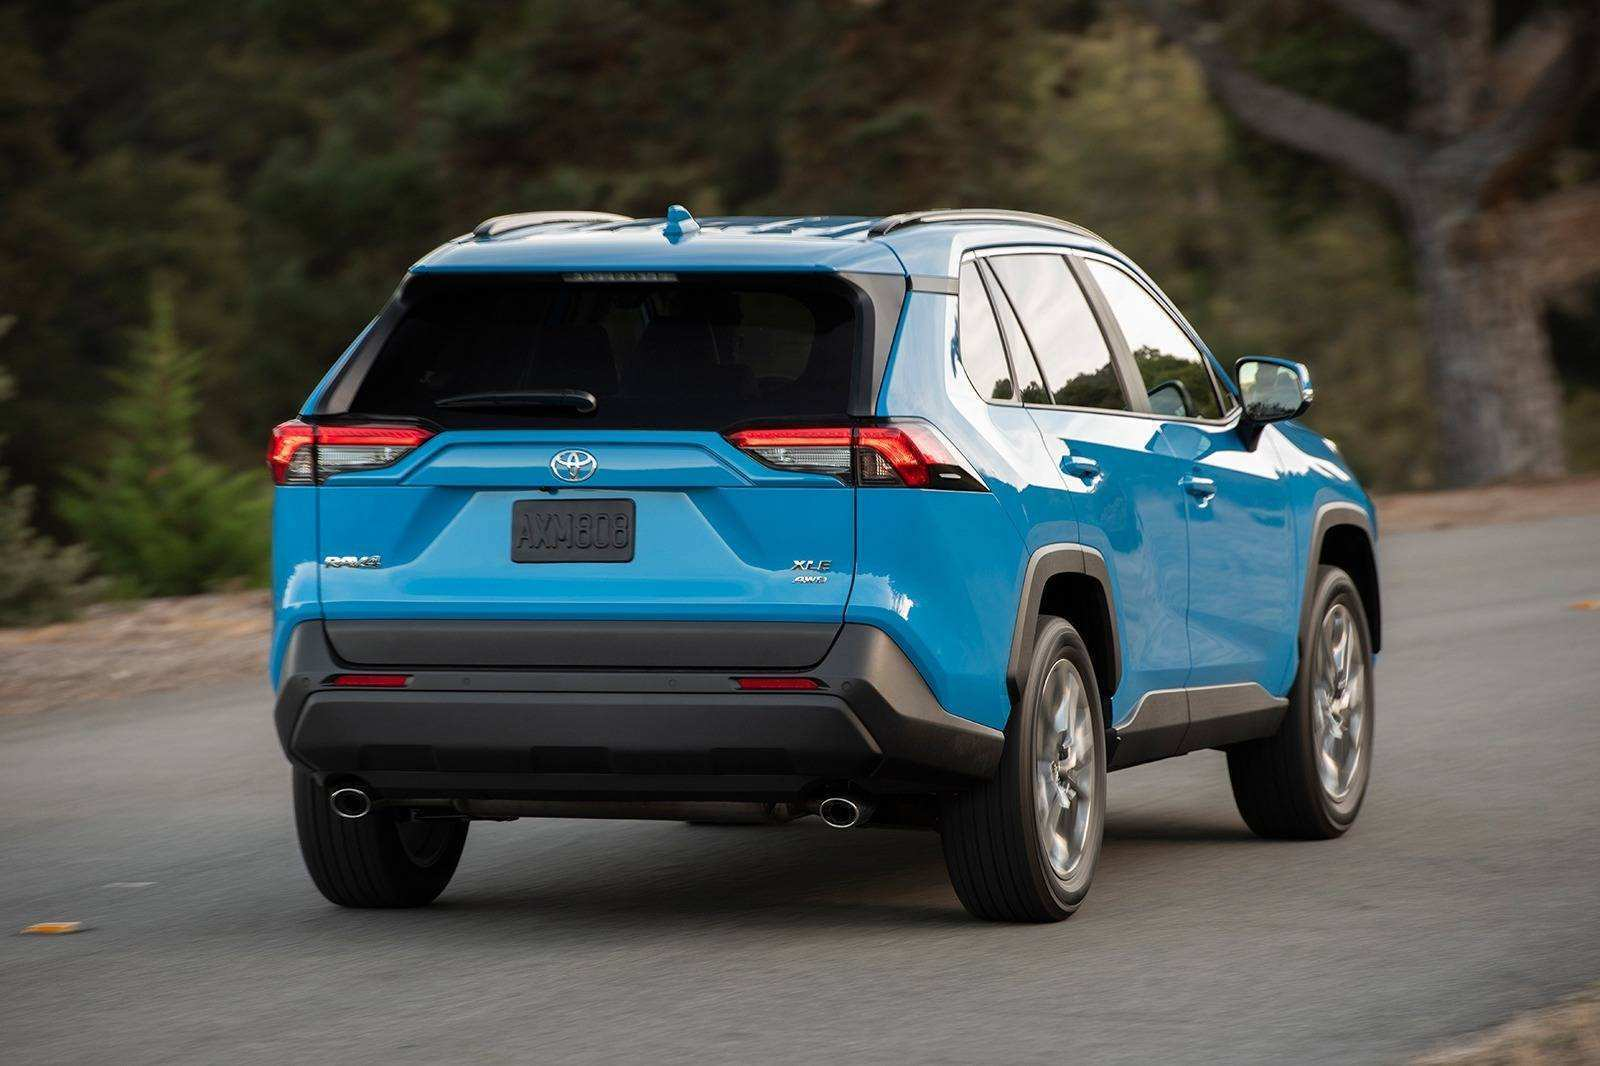 40 Concept of Best Toyota Rav4 Hybrid 2019 Specs And Review Prices with Best Toyota Rav4 Hybrid 2019 Specs And Review